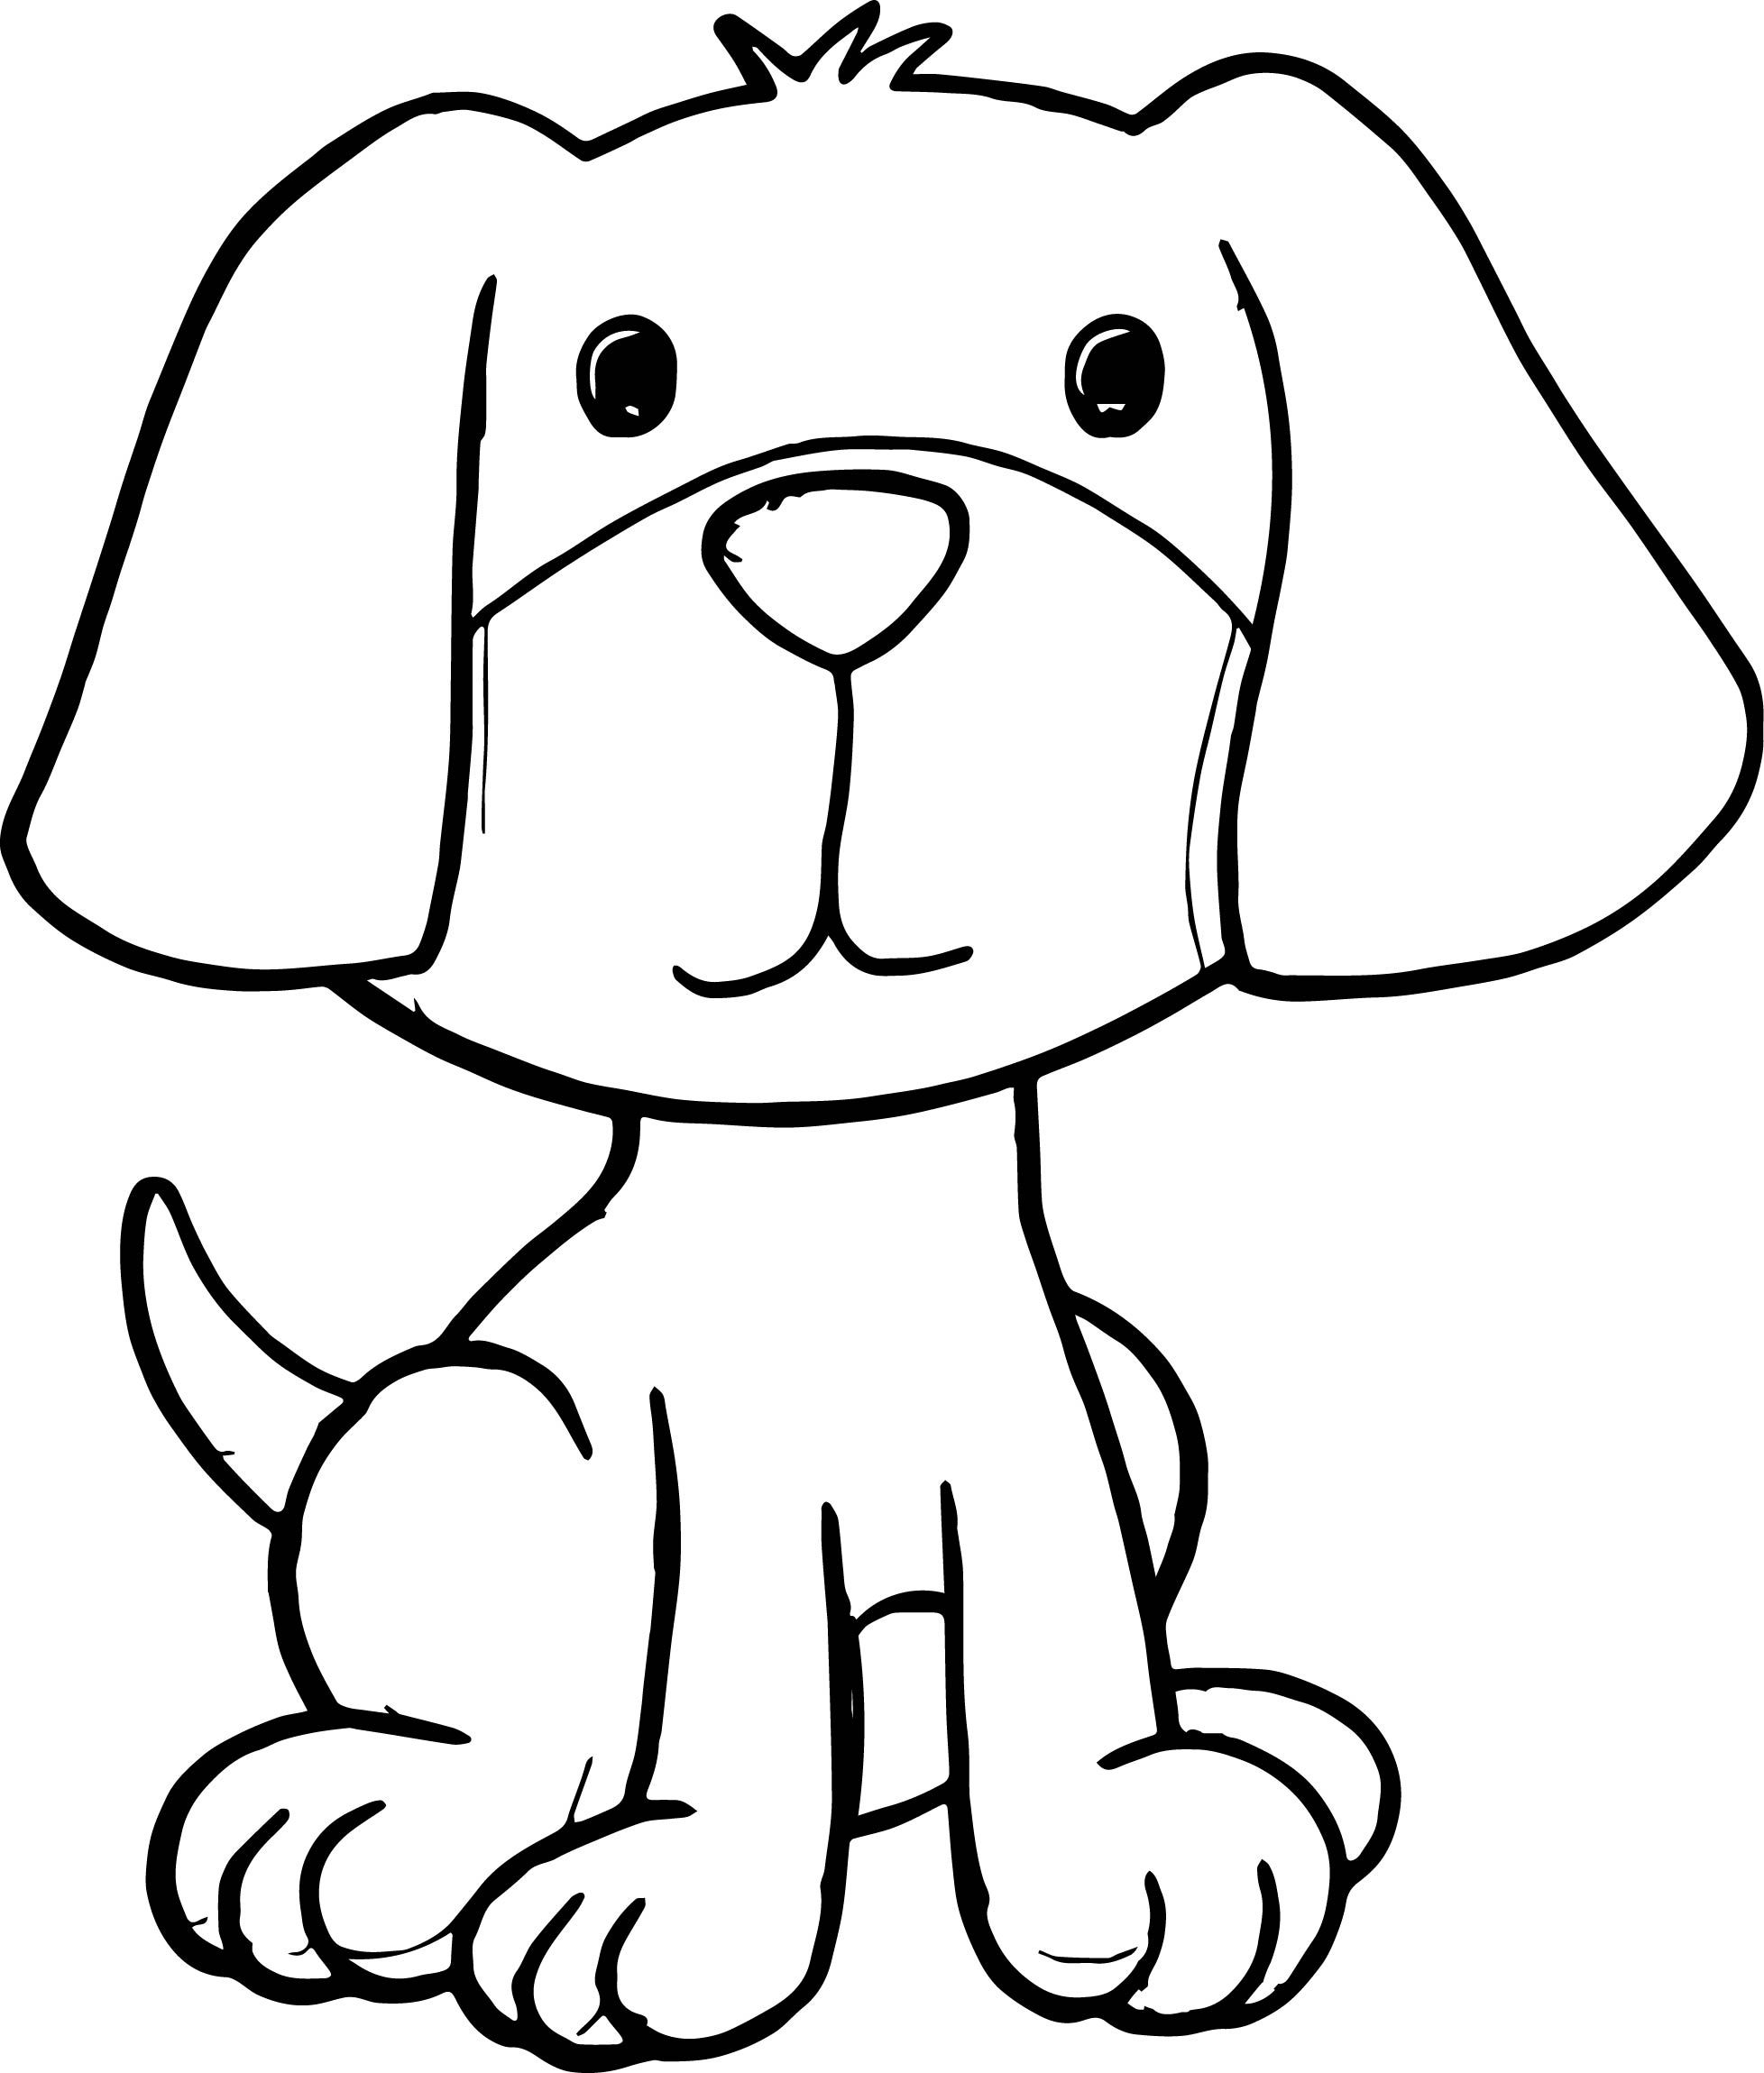 Cool Puppy Pictures Of Cute Cartoon Puppies Dog Puppy Coloring Page Puppy Coloring Pages Puppy Cartoon Dog Coloring Page